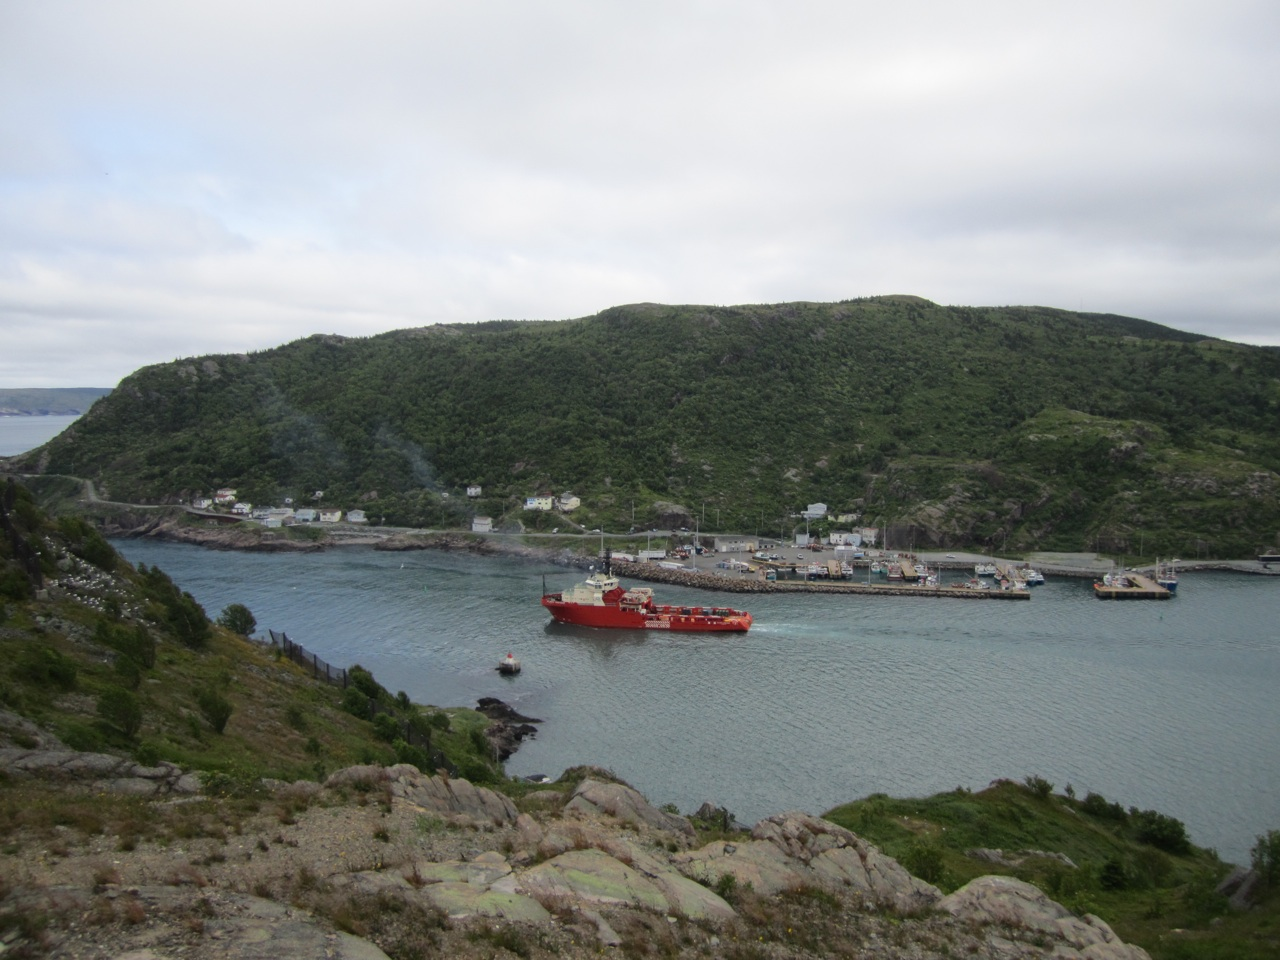 A Ship Going Out To The Ocean From St. John's Bay